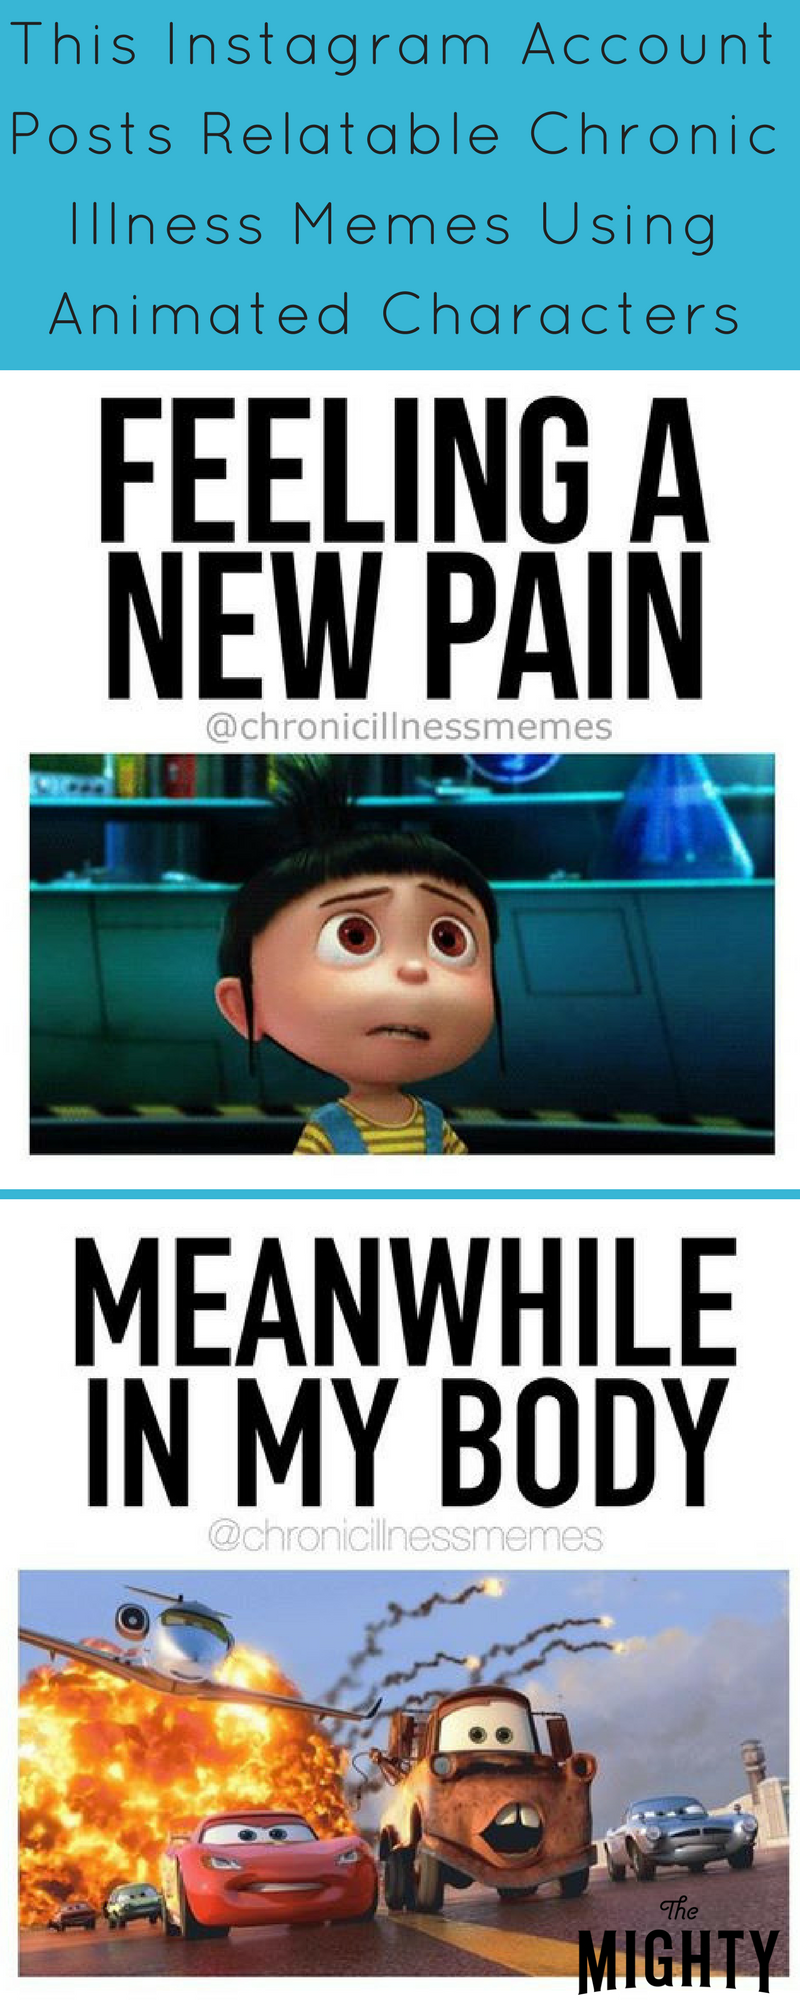 9f0a9b6fe01f0866792398aafc0316c7 this instagram uses your favorite animated characters to describe,Chronic Illness Meme Unhelpful Advice